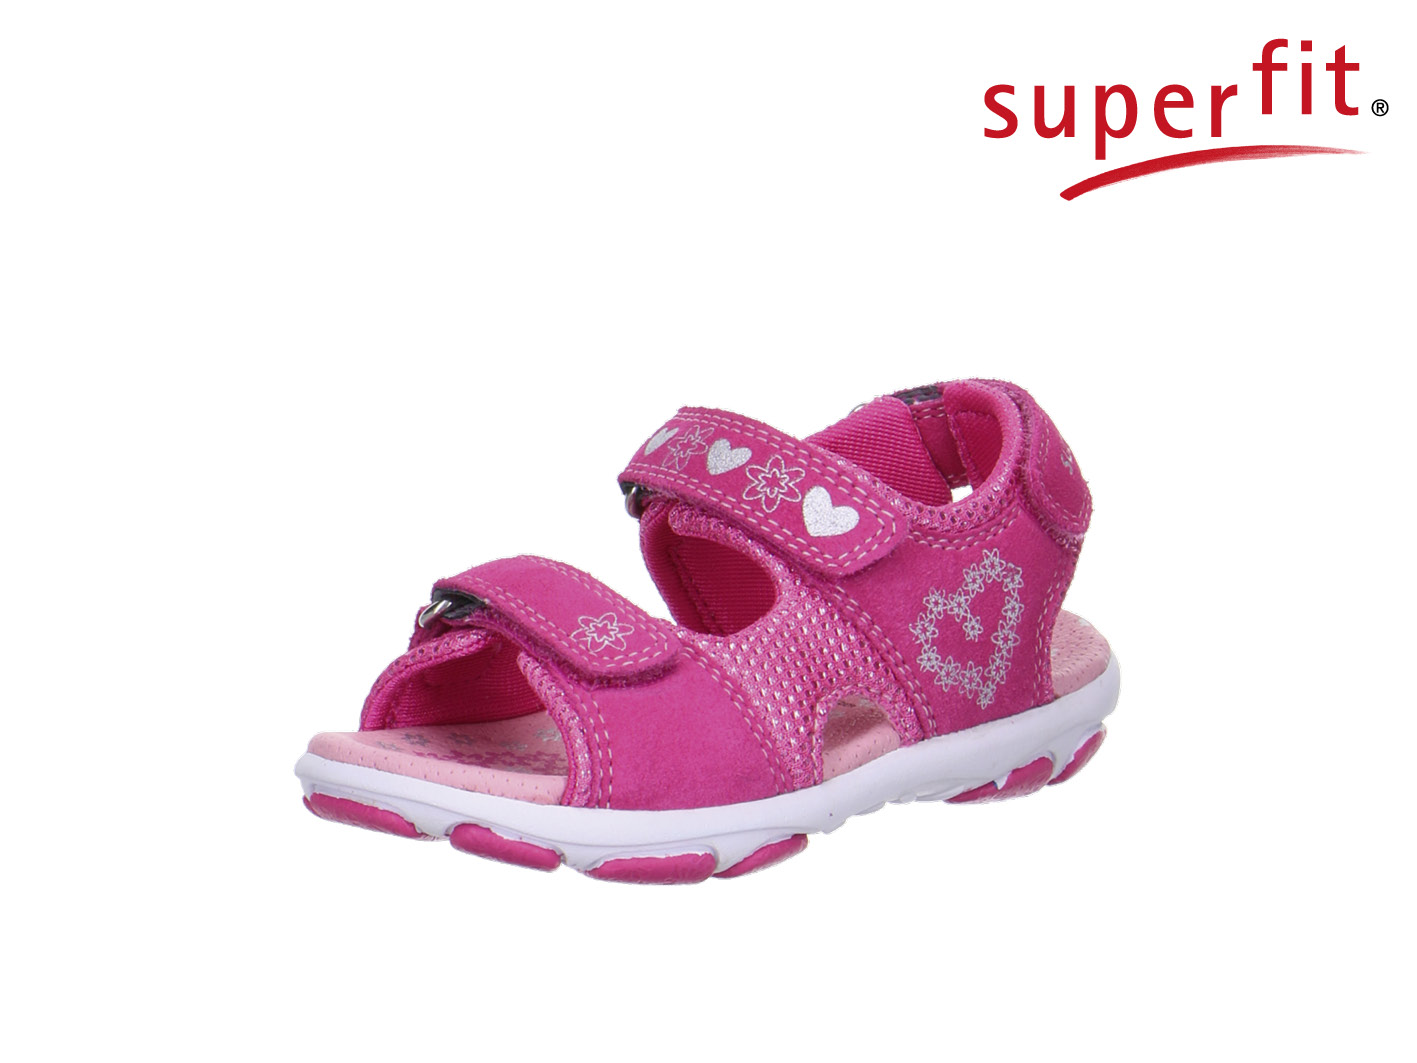 sandali superfit nelly1  2-00130-63